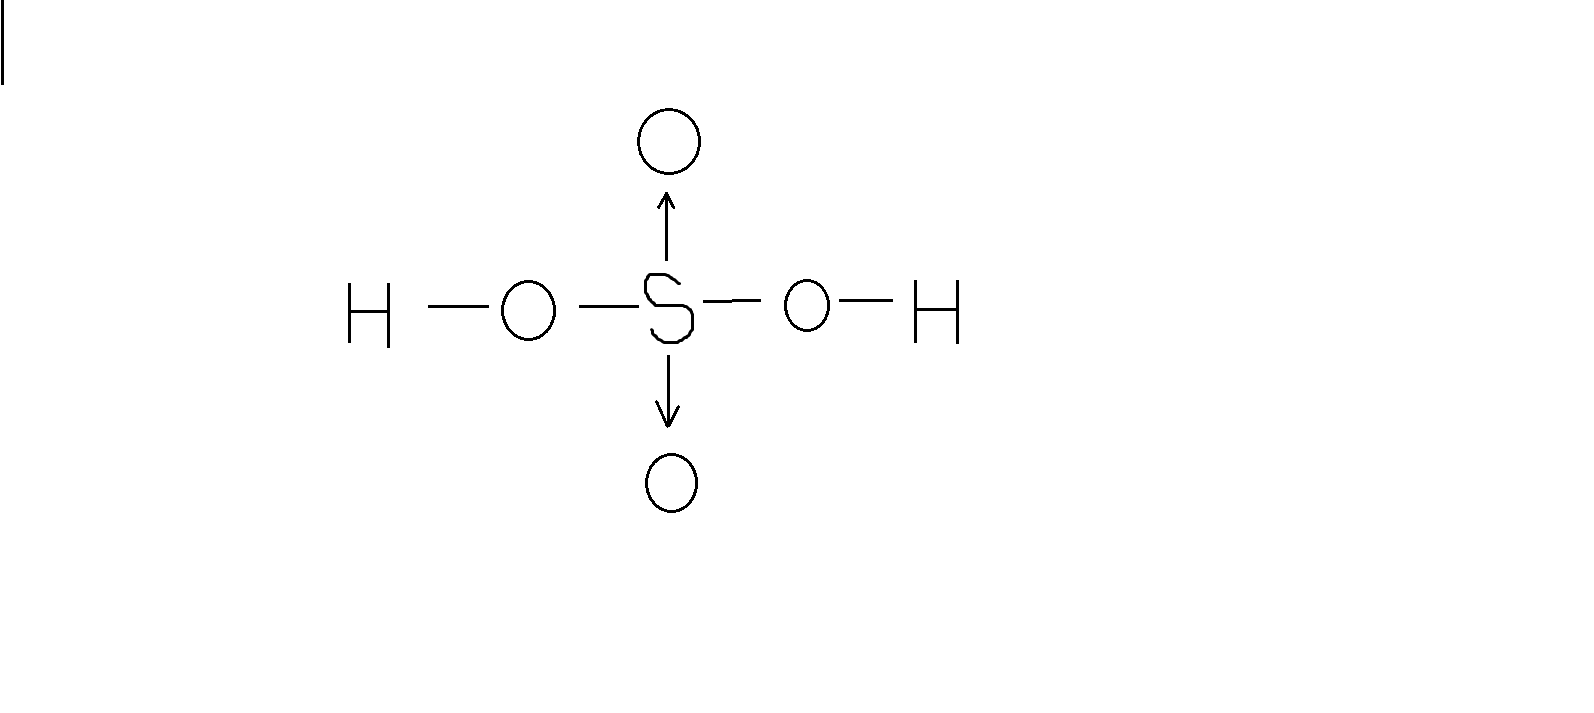 Given Below Shows The Bonding Structure Of Sulphuric Acidexplain